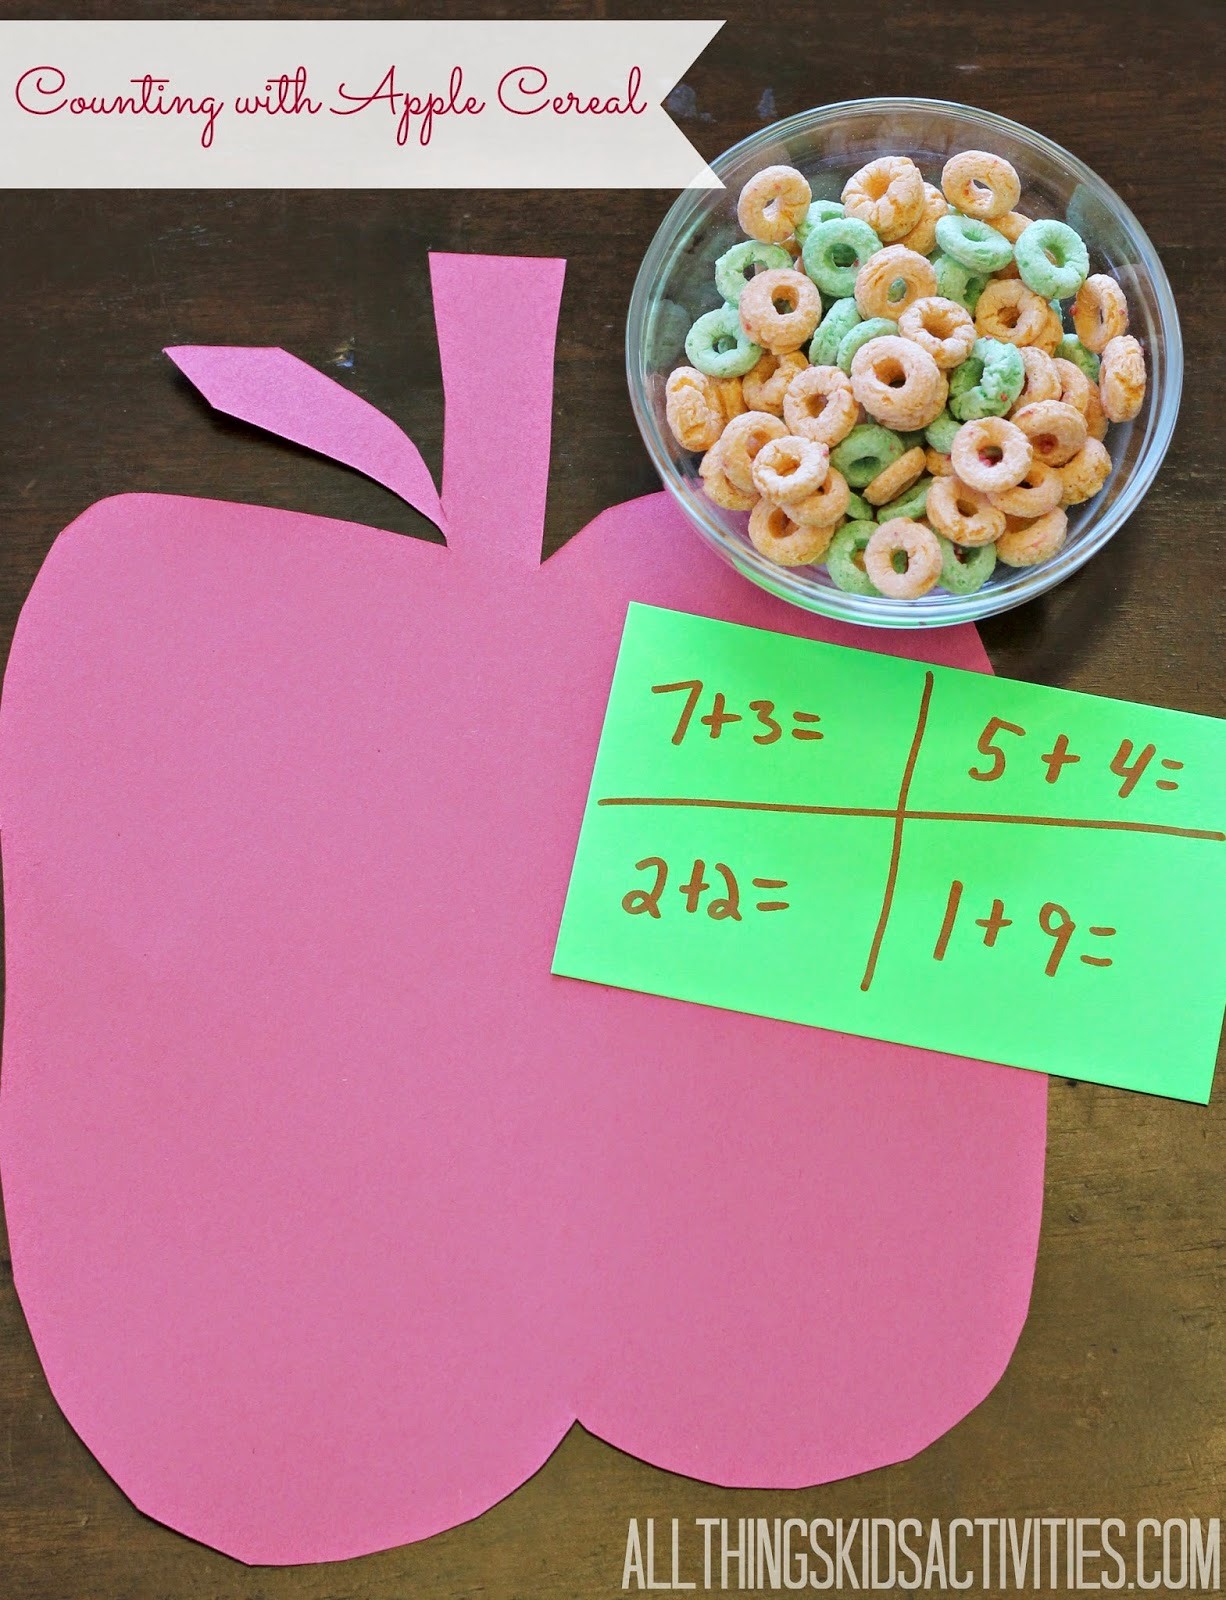 Counting with Apple Cereal